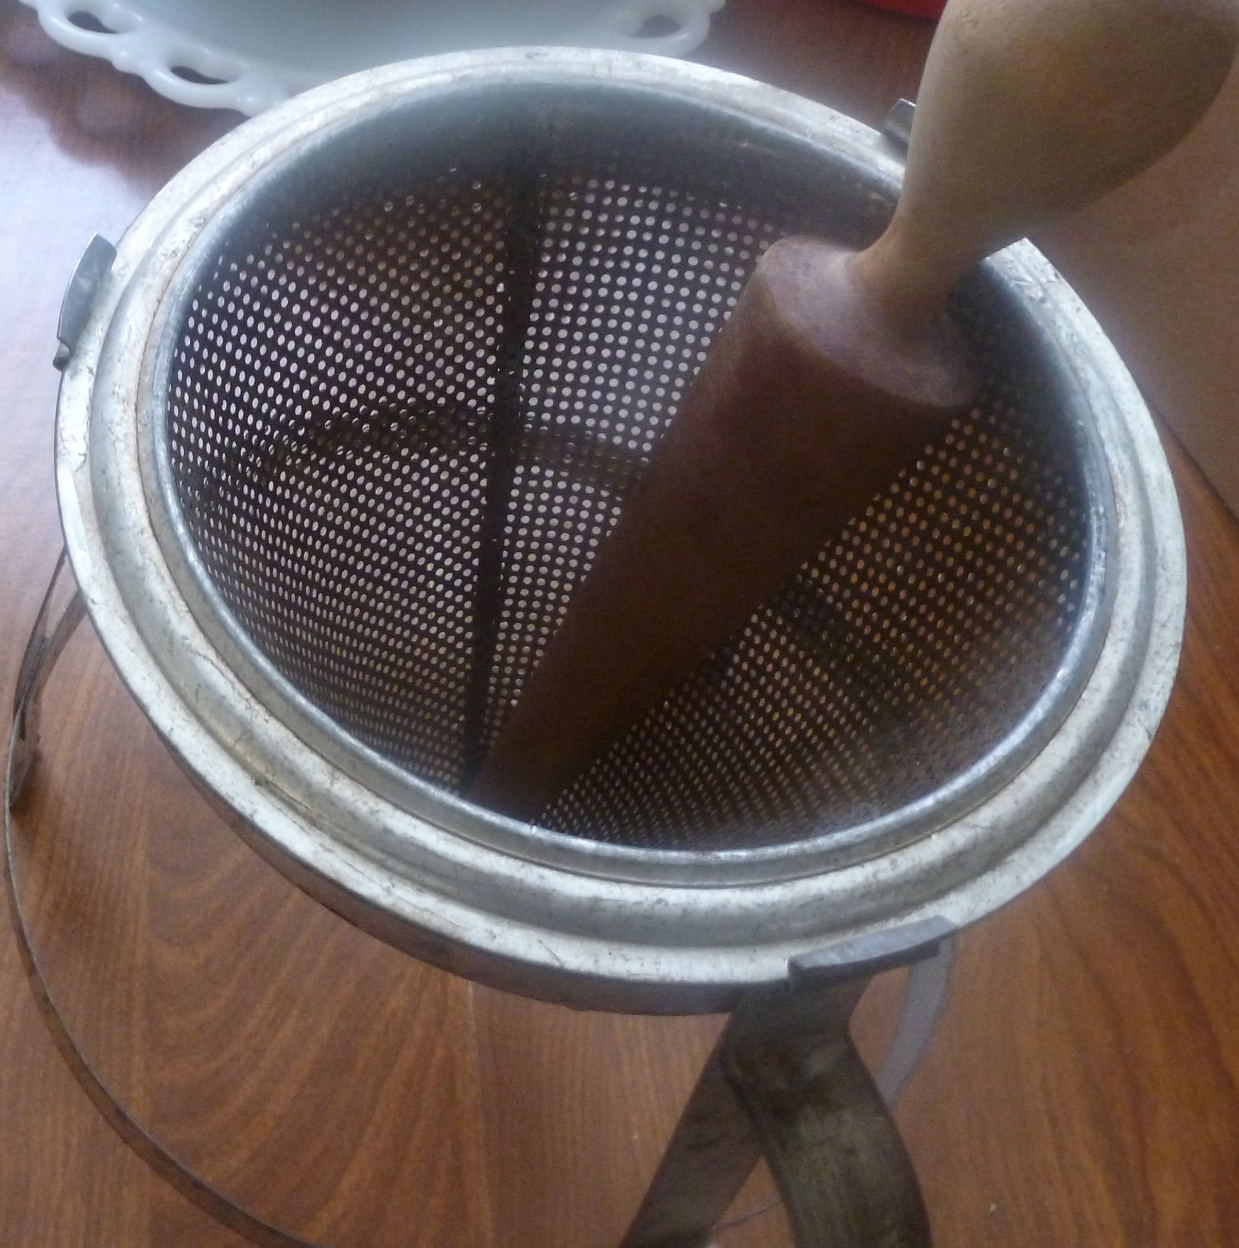 Old Fashioned Applesauce Sieve